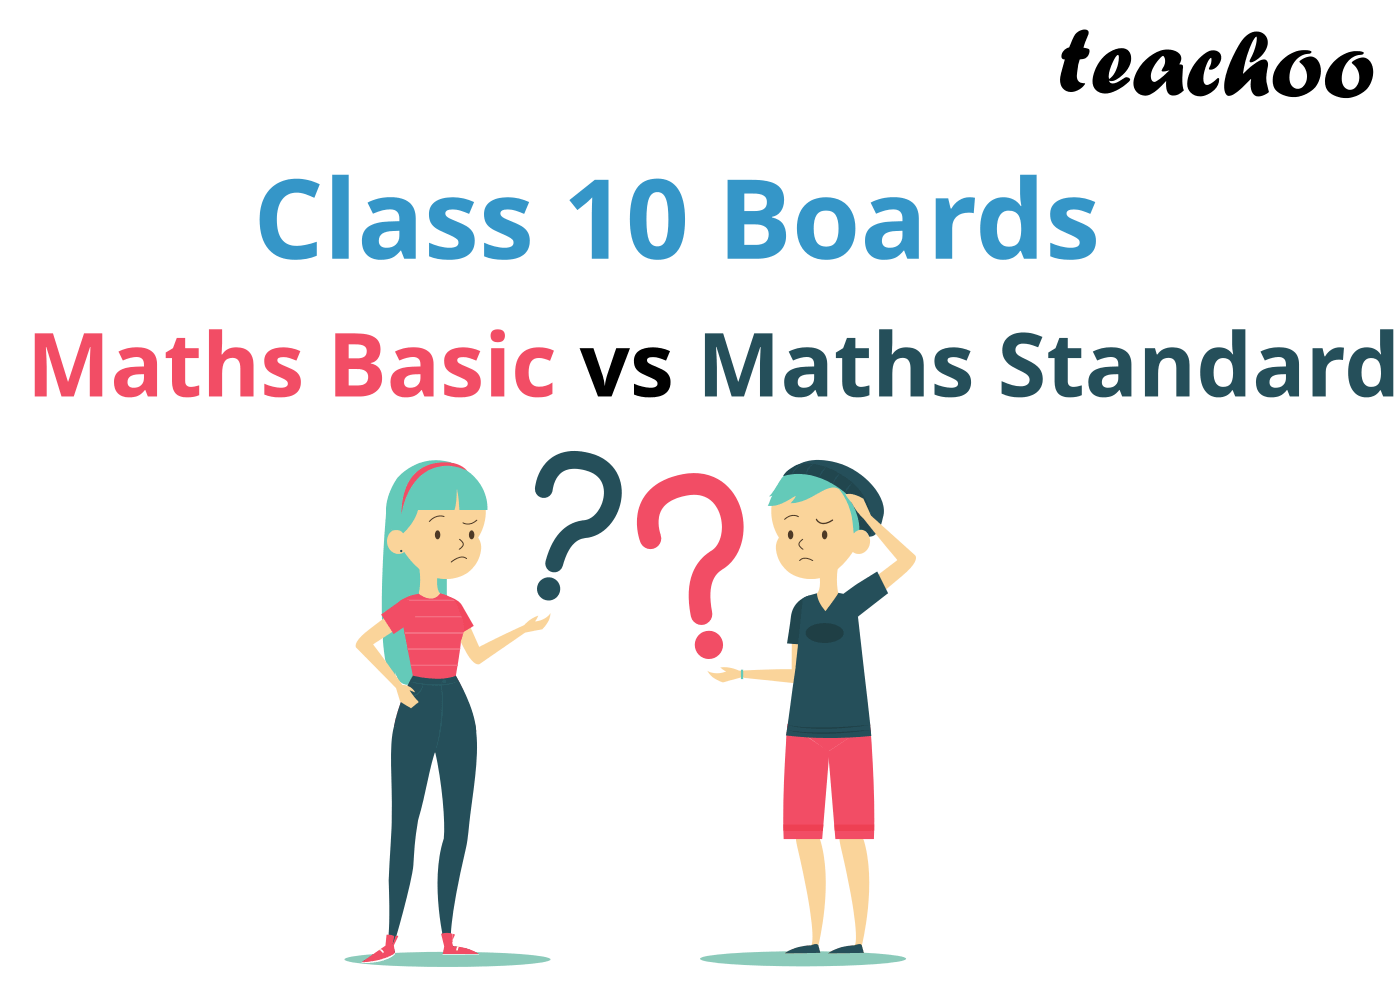 Maths Basic vs Maths Standard - Class 10 Boards - Check out the common questions and how to choose